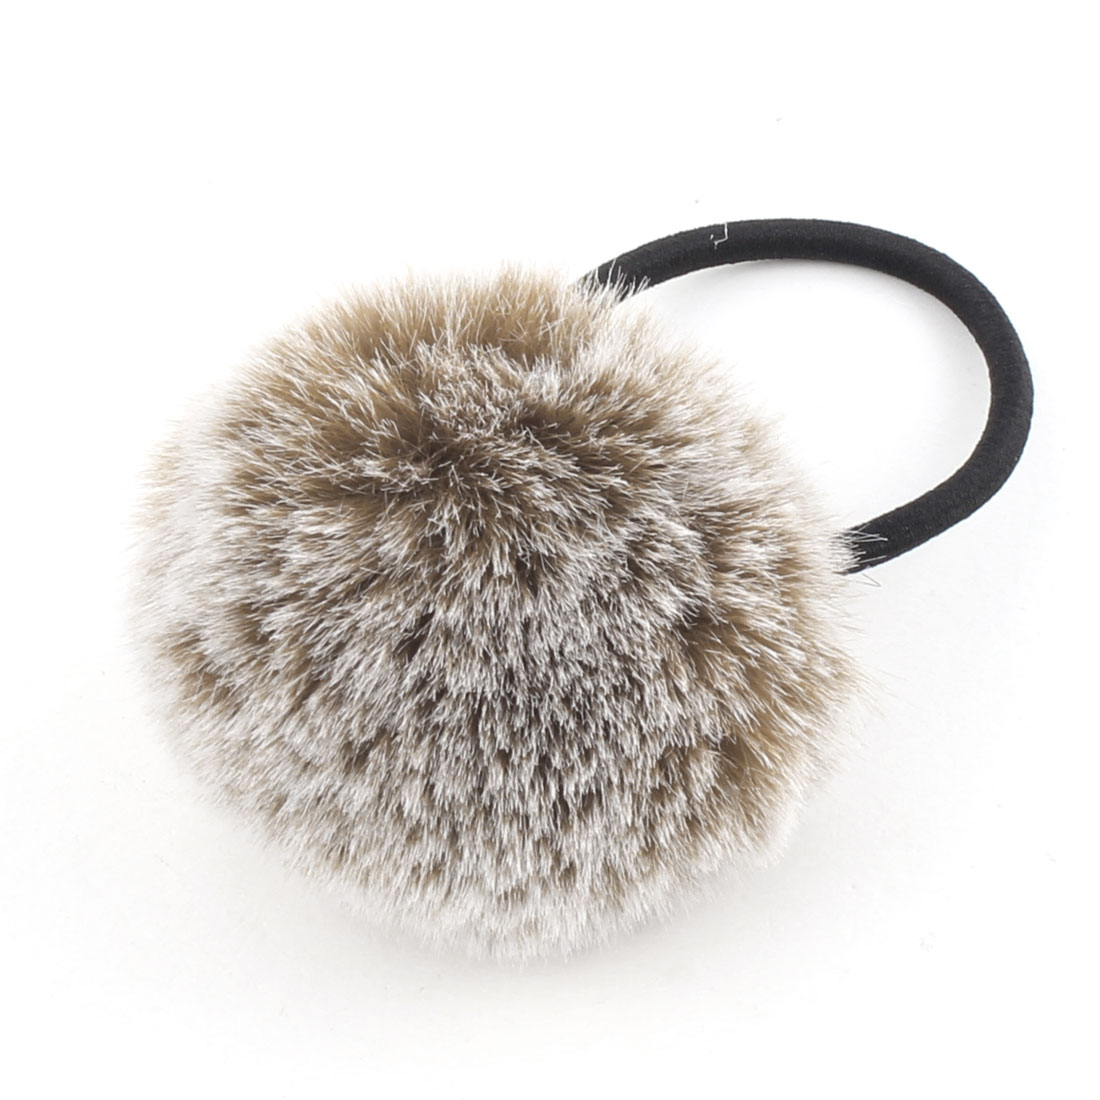 Faux Fur Ball Decor Stretchy Band DIY Hairstyle Ponytail Hairband Light Brown